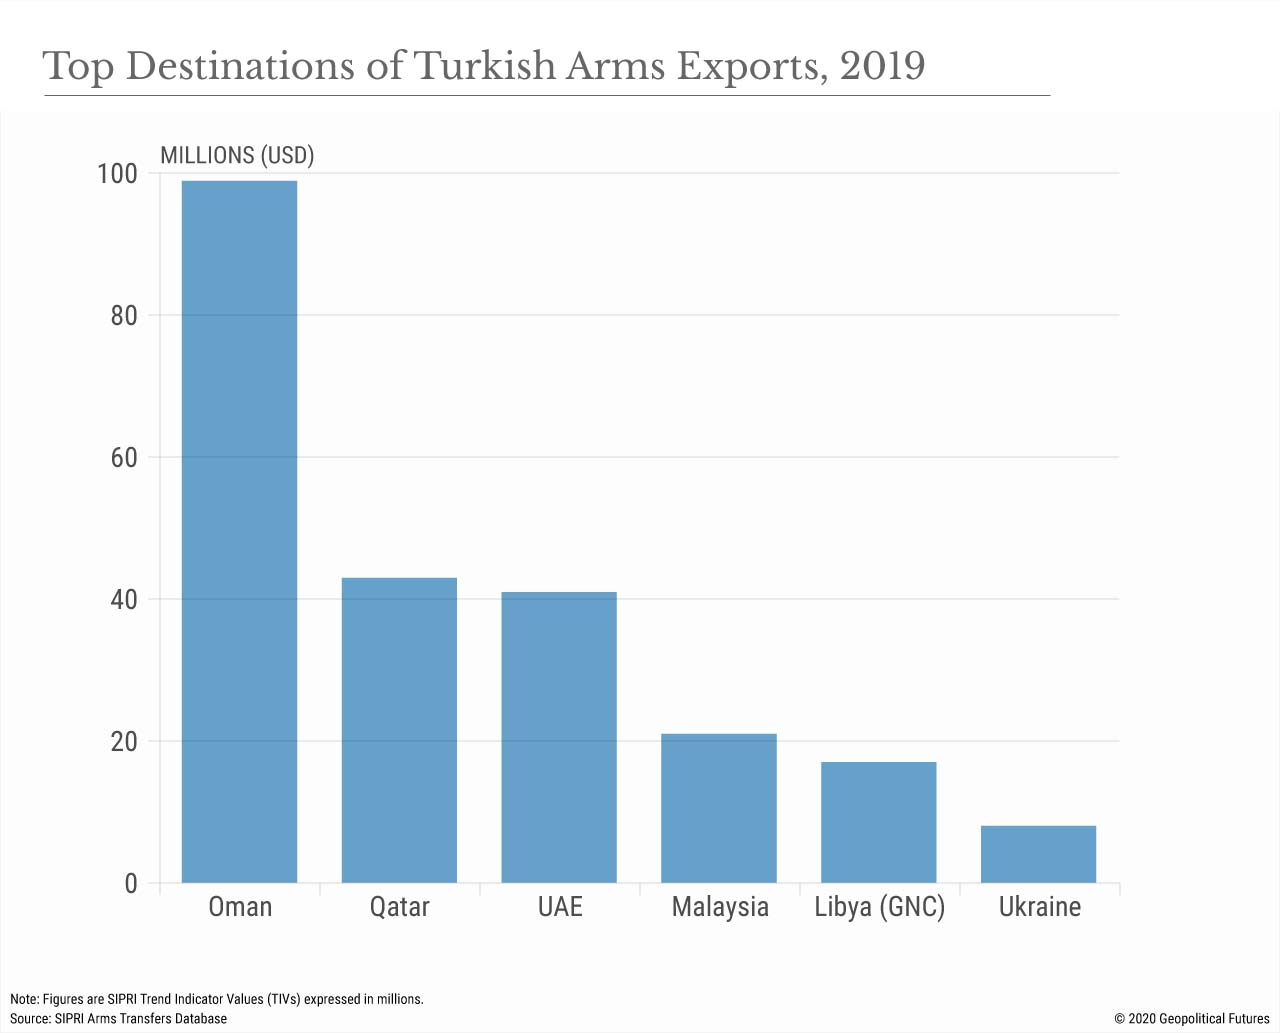 Top Destinations of Turkish Arms Exports, 2019